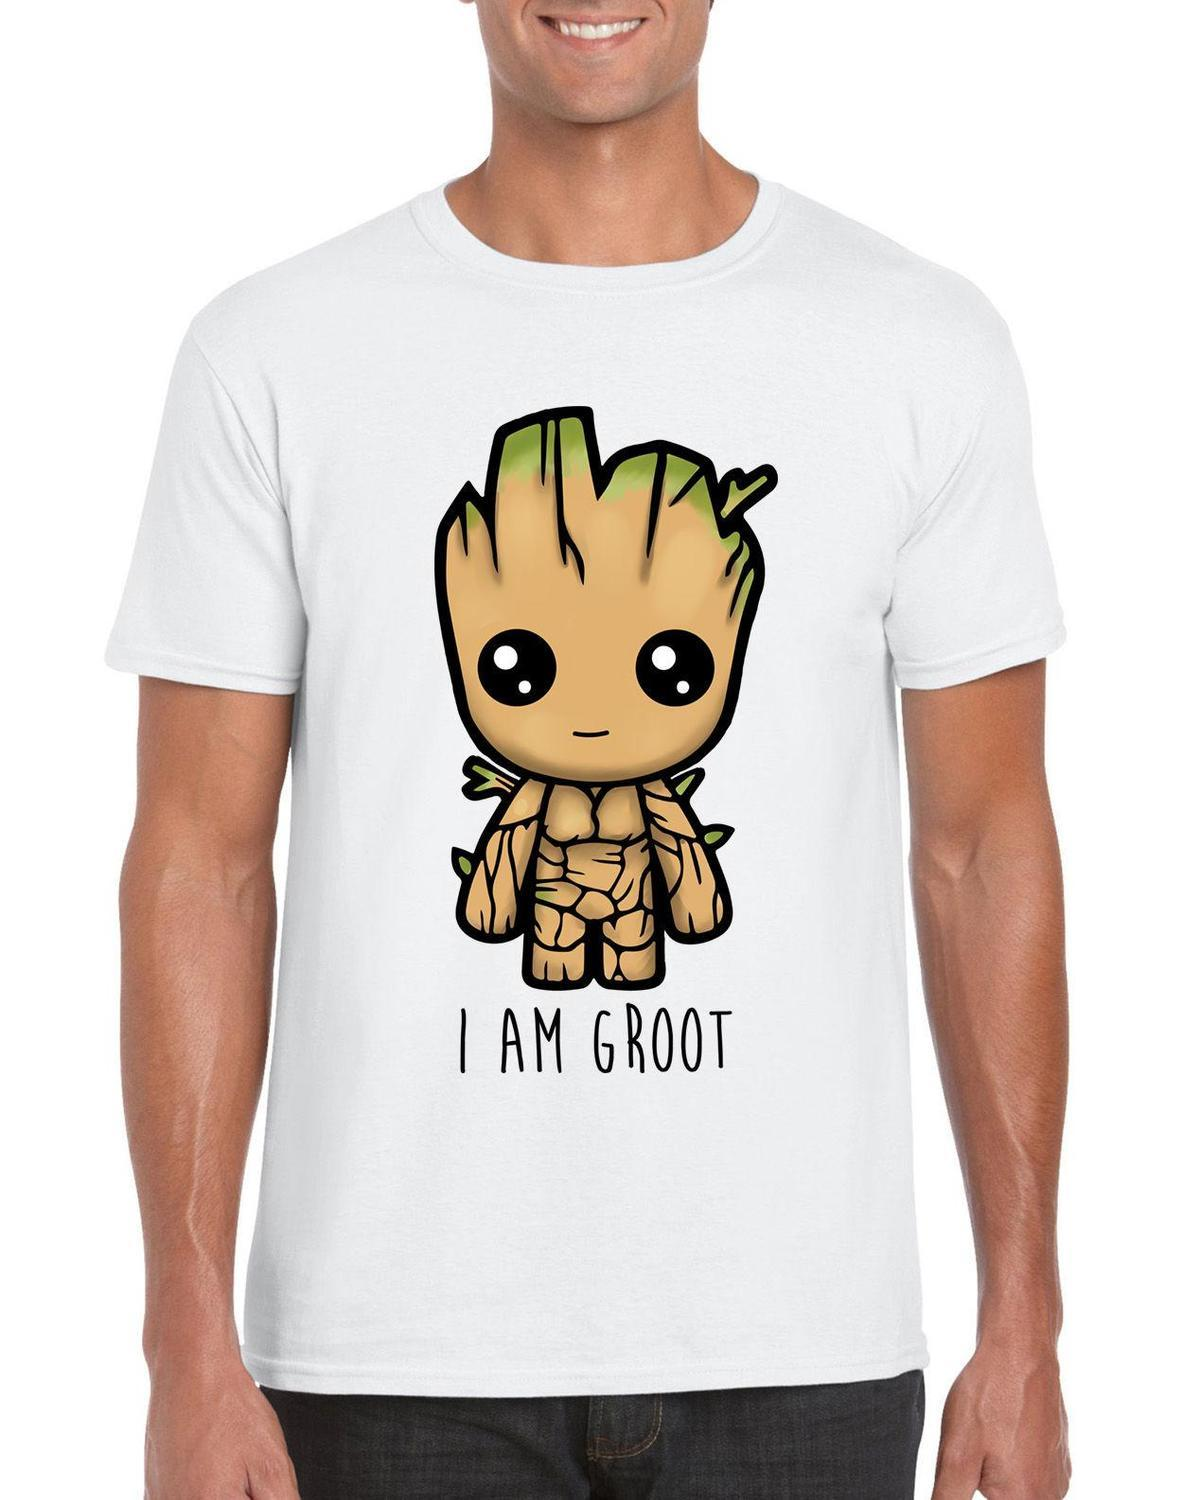 """I Am Groot"" Cute Baby Groot Guardians of The Galaxy 2 Inspired T-shirt - White"